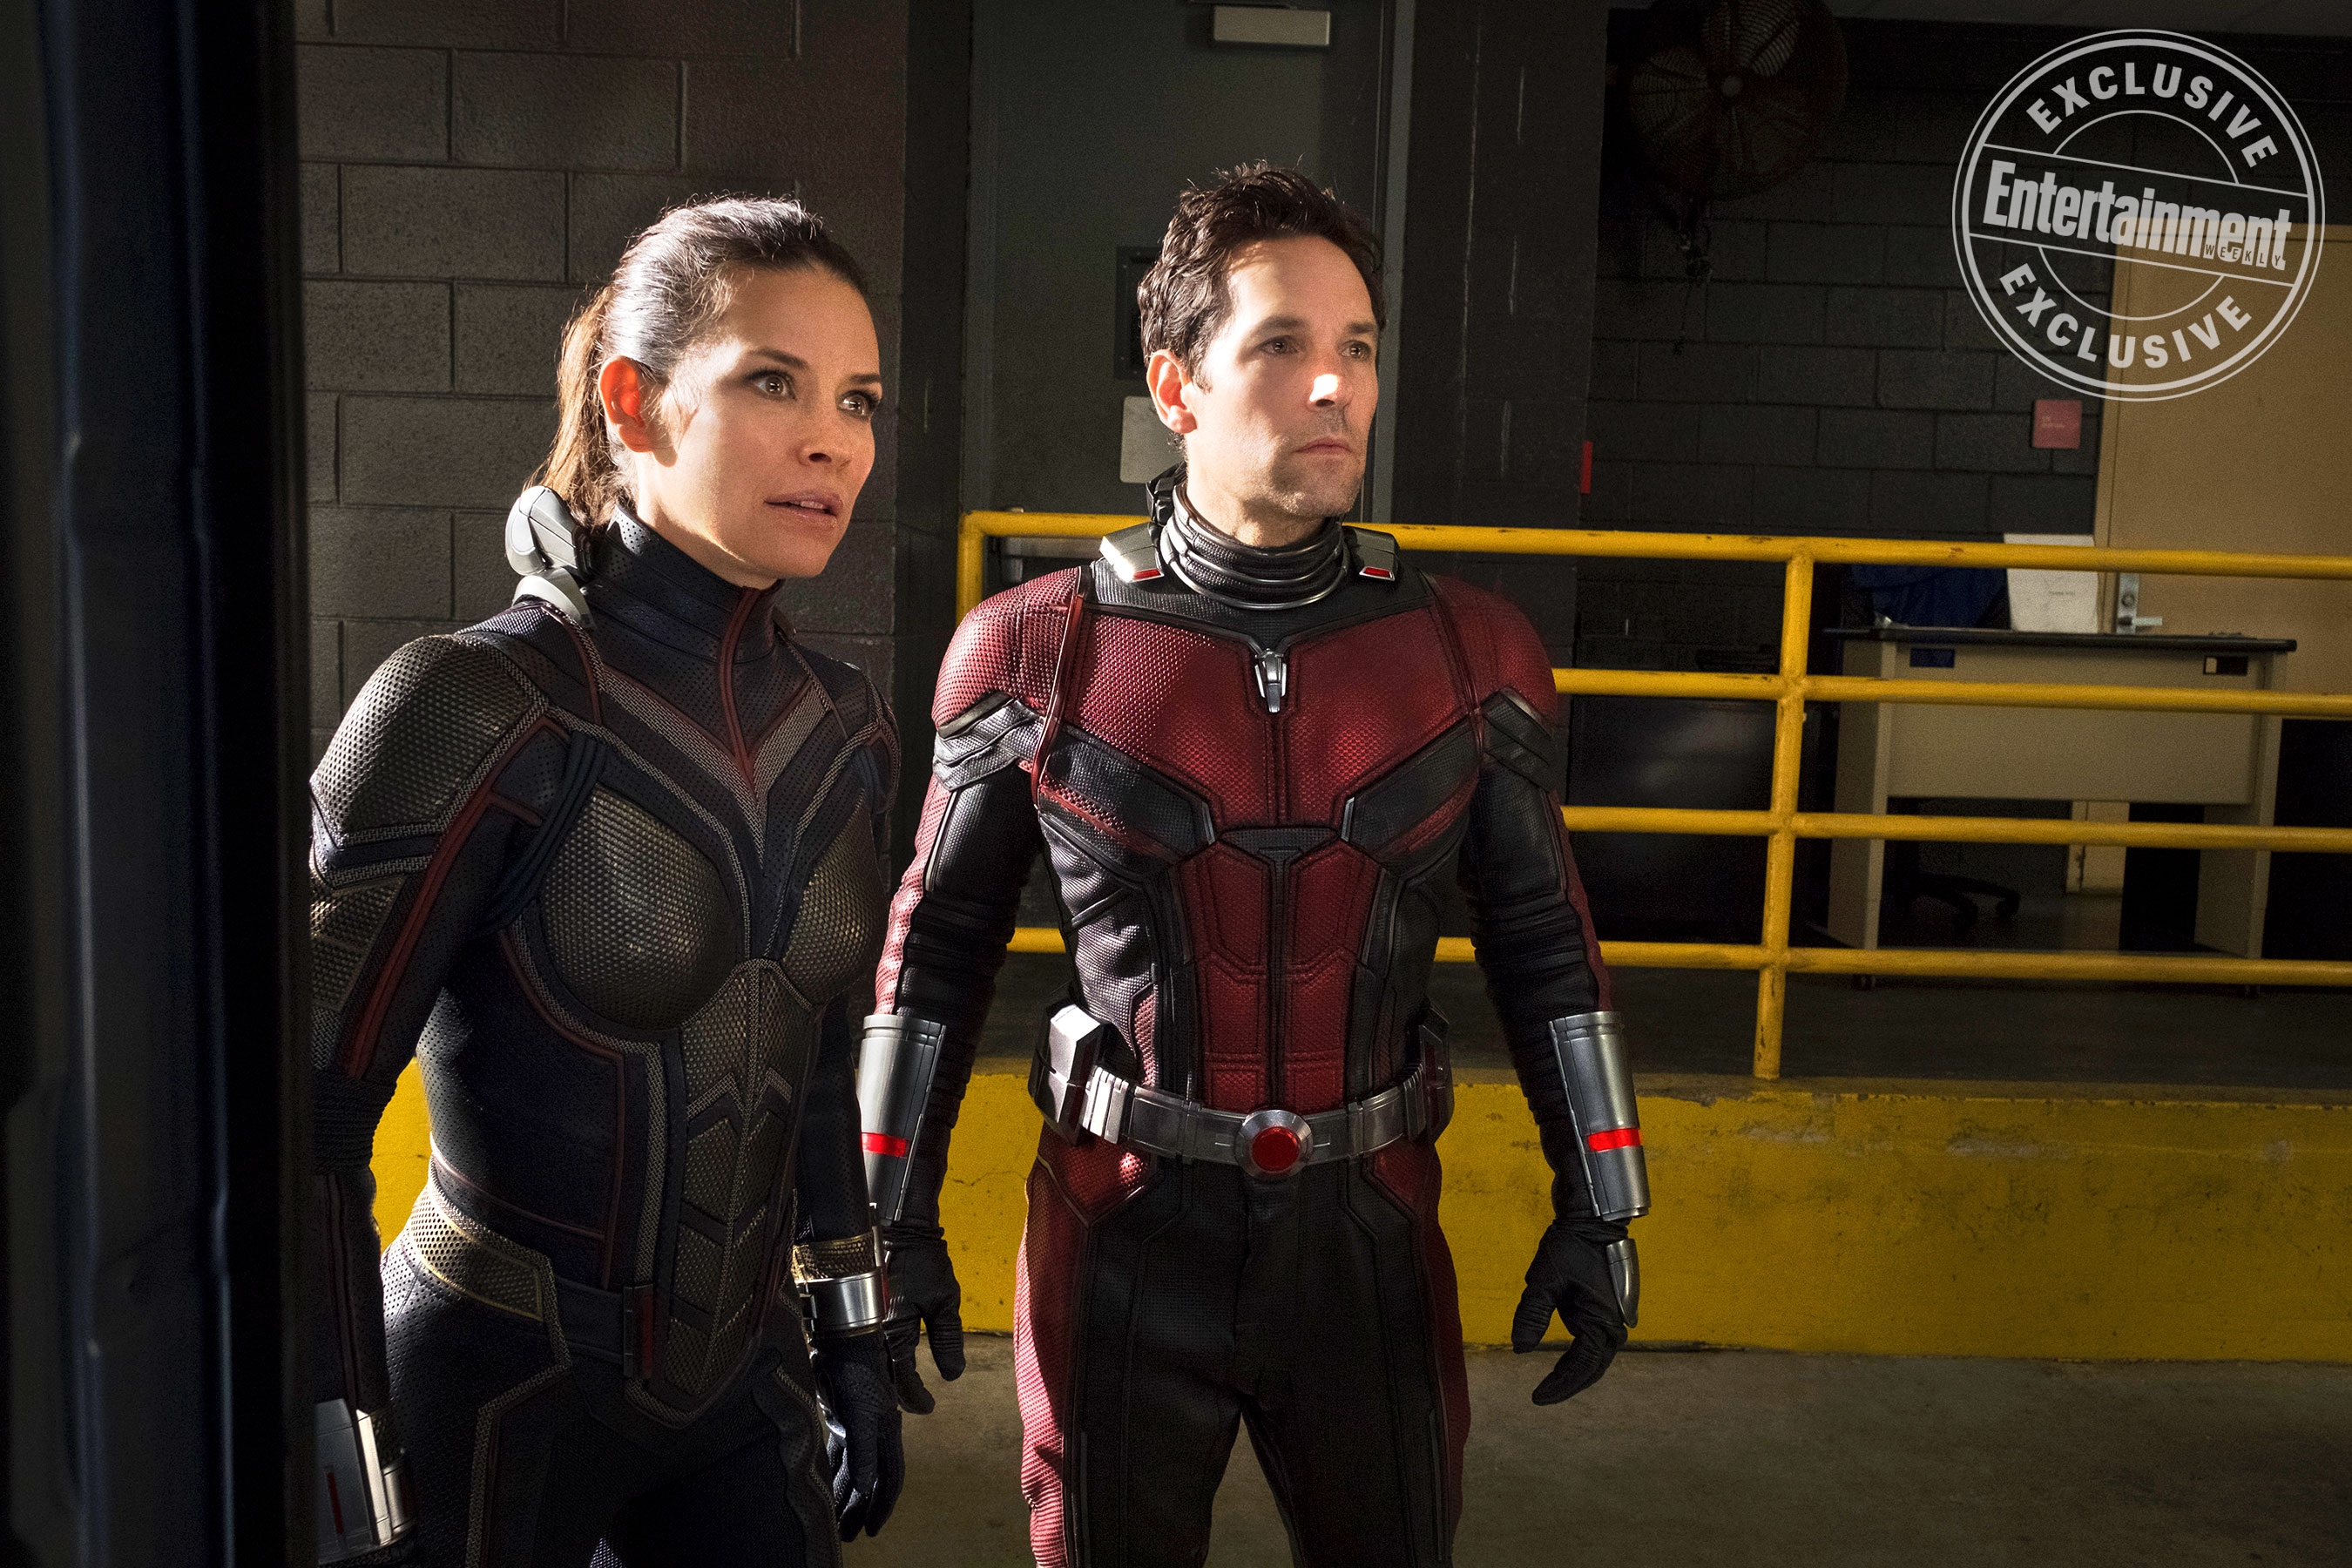 Marvel Studios ANT-MAN AND THE WASP L to R: The Wasp/Hope van Dyne (Evangeline Lilly) and Ant-Man/Scott Lang (Paul Rudd)